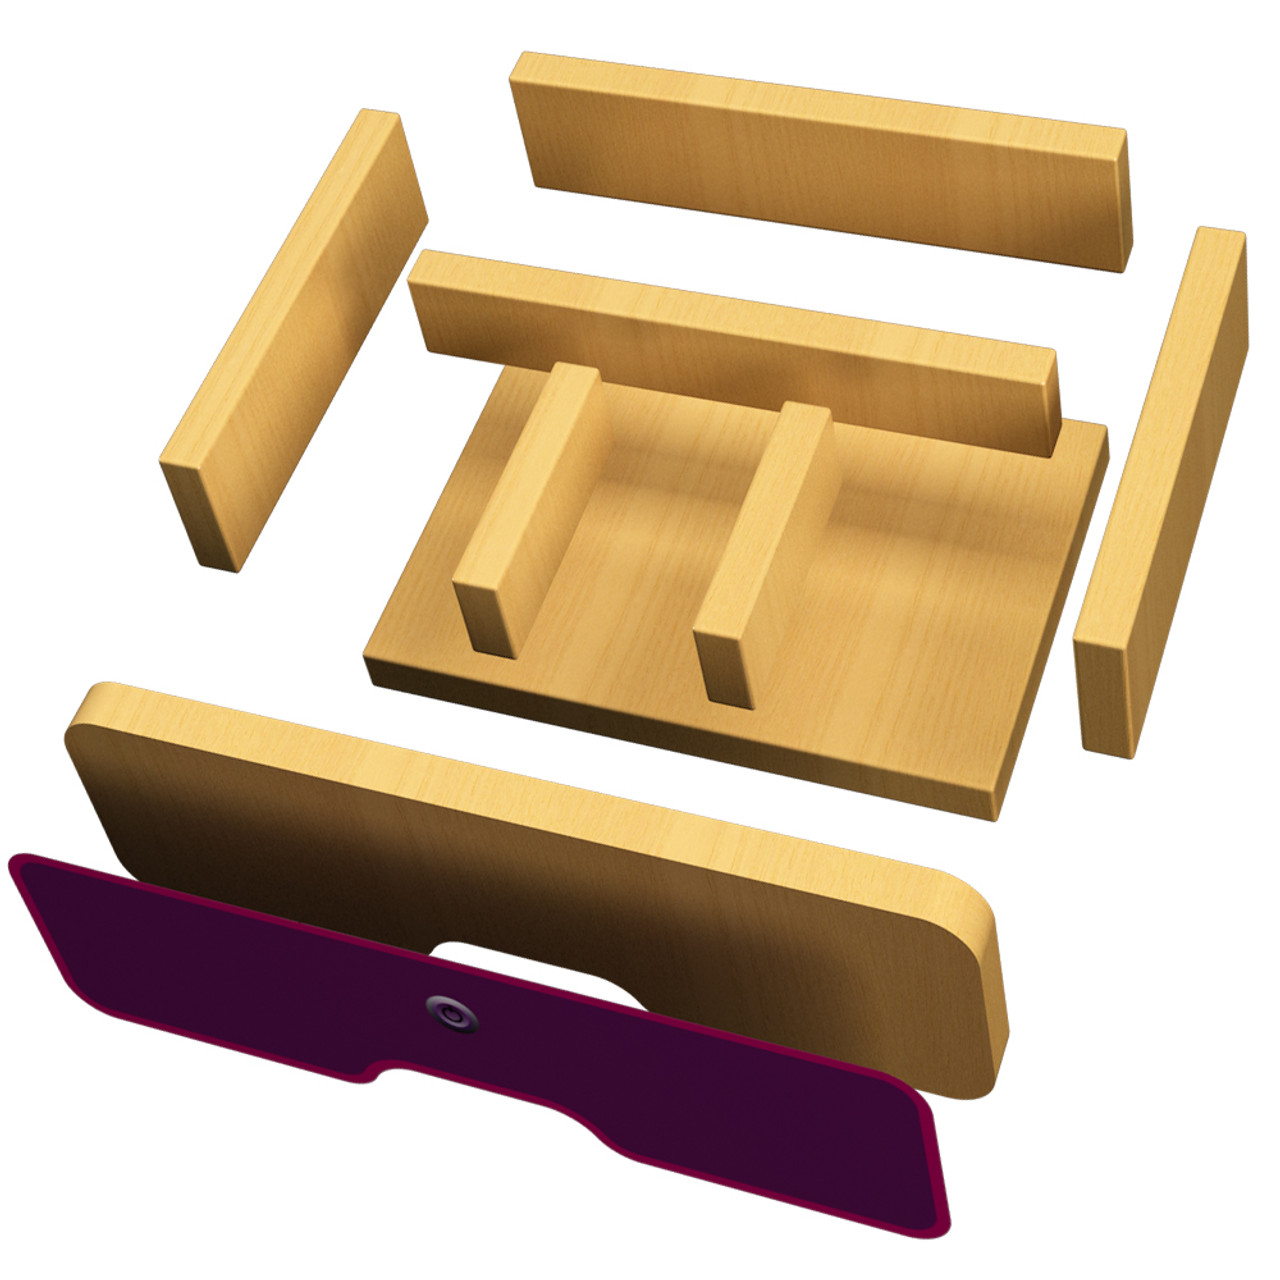 my little checkout register wood toy plans (pdf download)